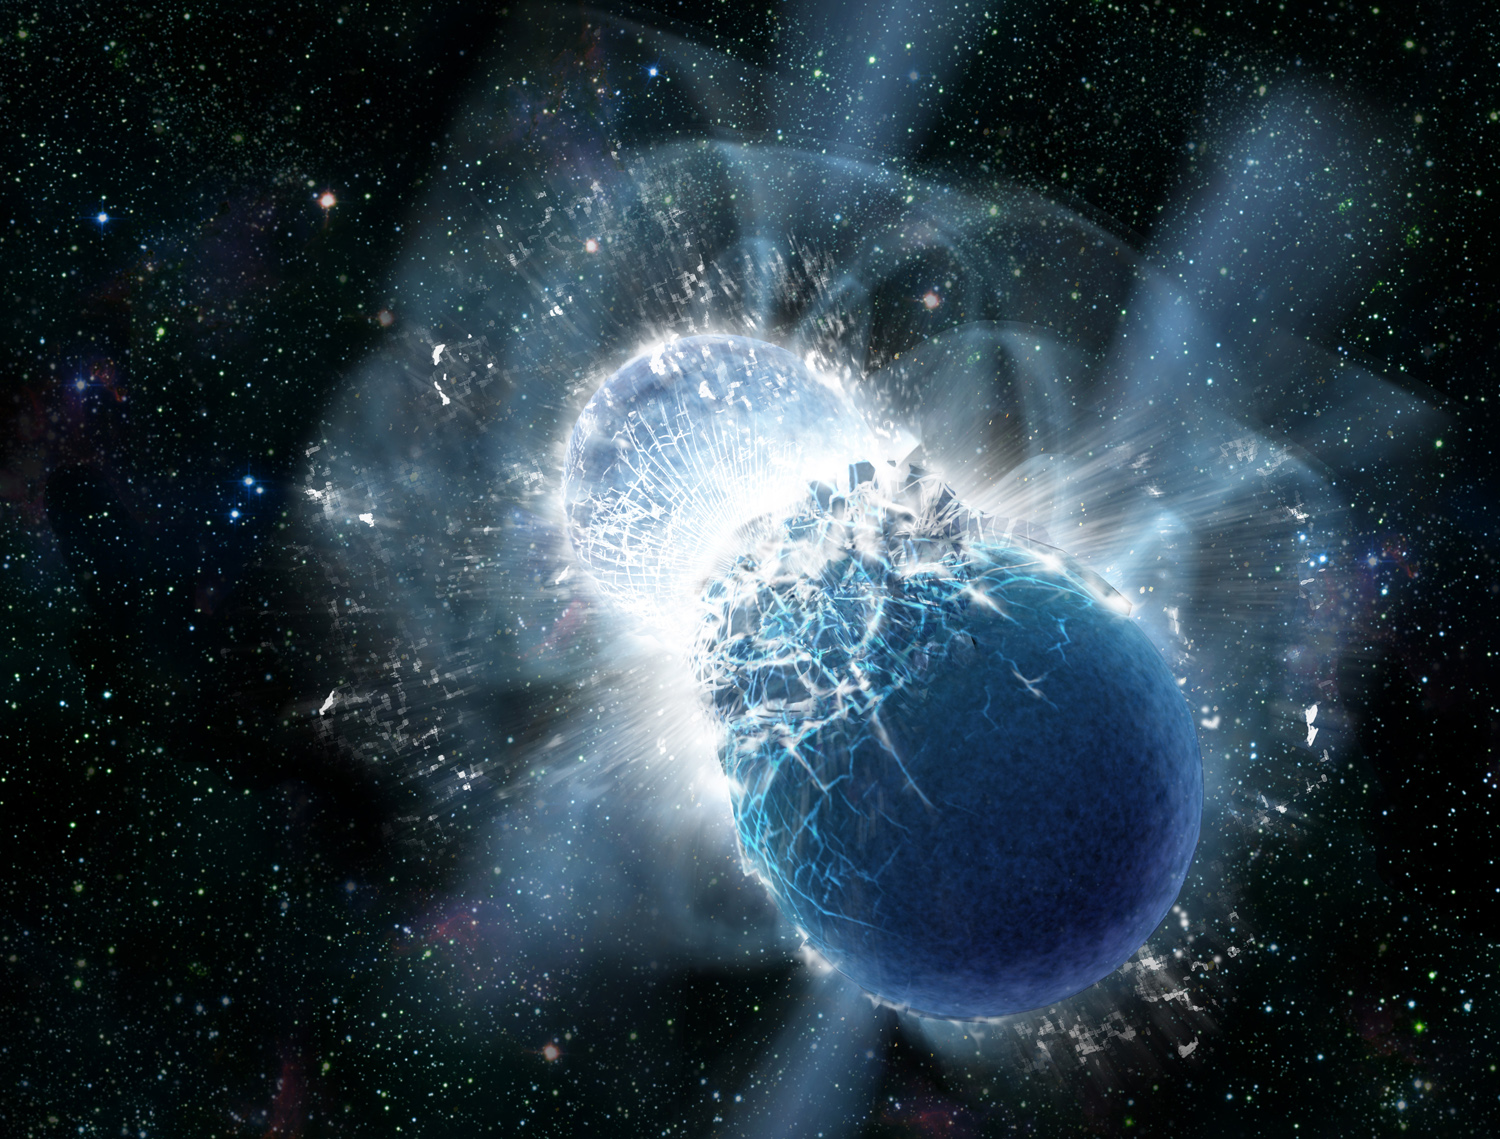 Earth's Gold May Come From Collisions of Dead Stars